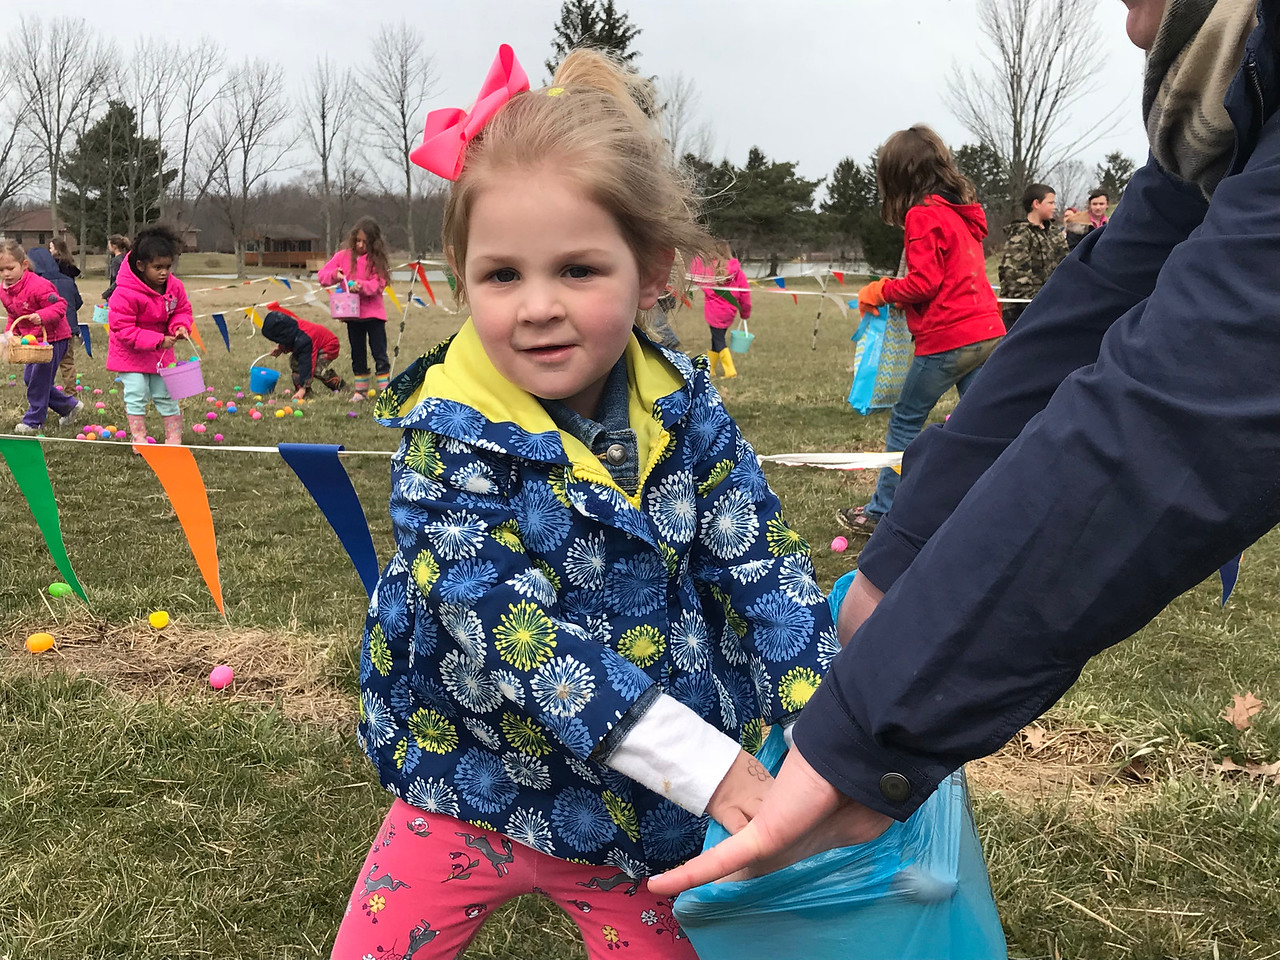 NATHAN HAVENNER / GAZETTE  Kennedy Boyer, 3, goes for an Easter egg during an afternoon hunt at Beriswill Farms on Saturday. The farm at 2200 Station Road, Liverpool Township, has hosted the Easter Egg Hunt and Farm Fun event for families since 2016.